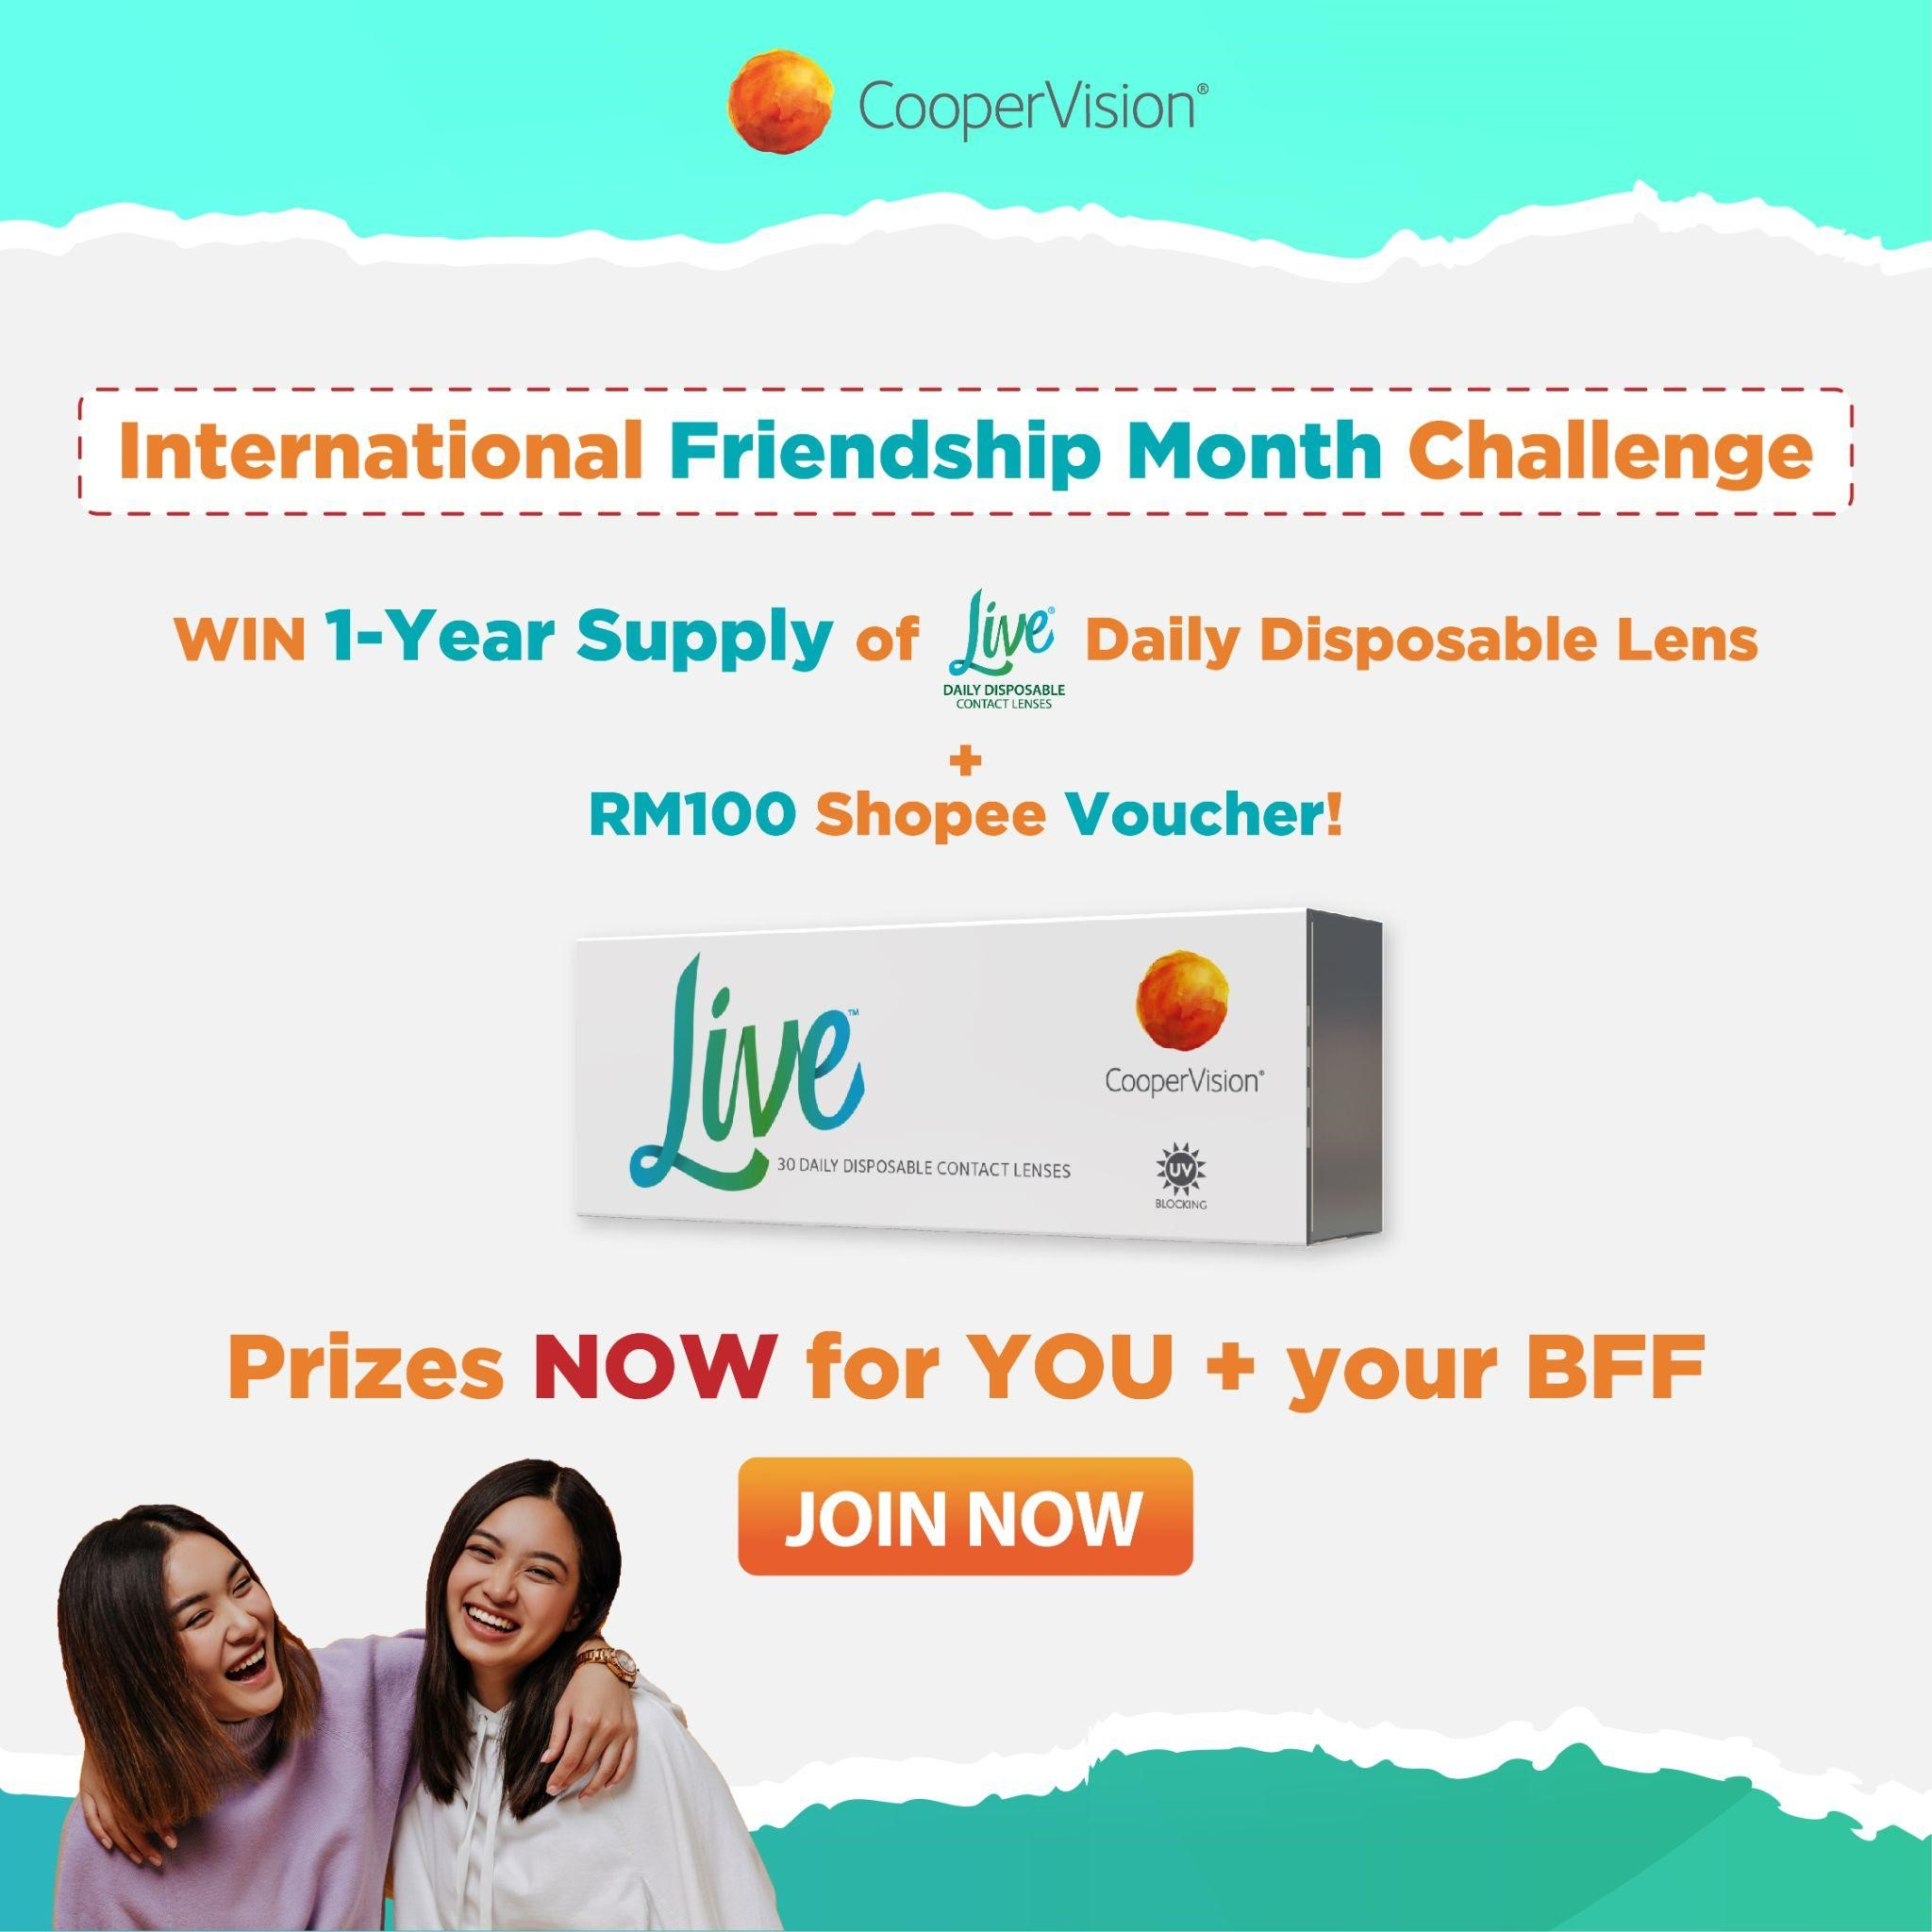 International Friendship Month is here and CooperVision wants to celebrate with you and your bestie!